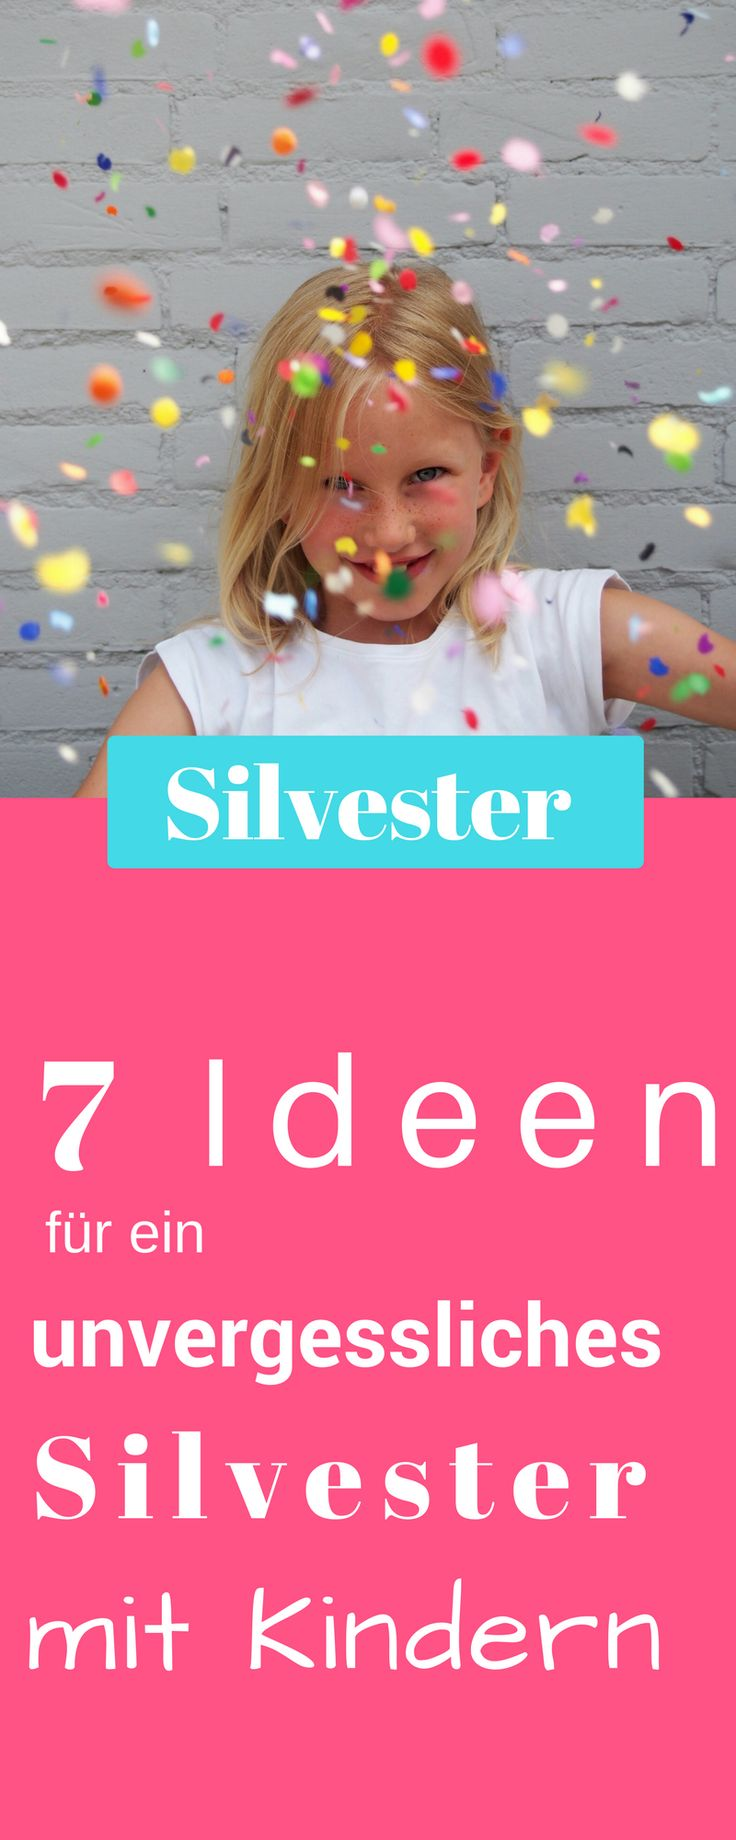 die besten 25 silvester mit kindern ideen auf pinterest. Black Bedroom Furniture Sets. Home Design Ideas